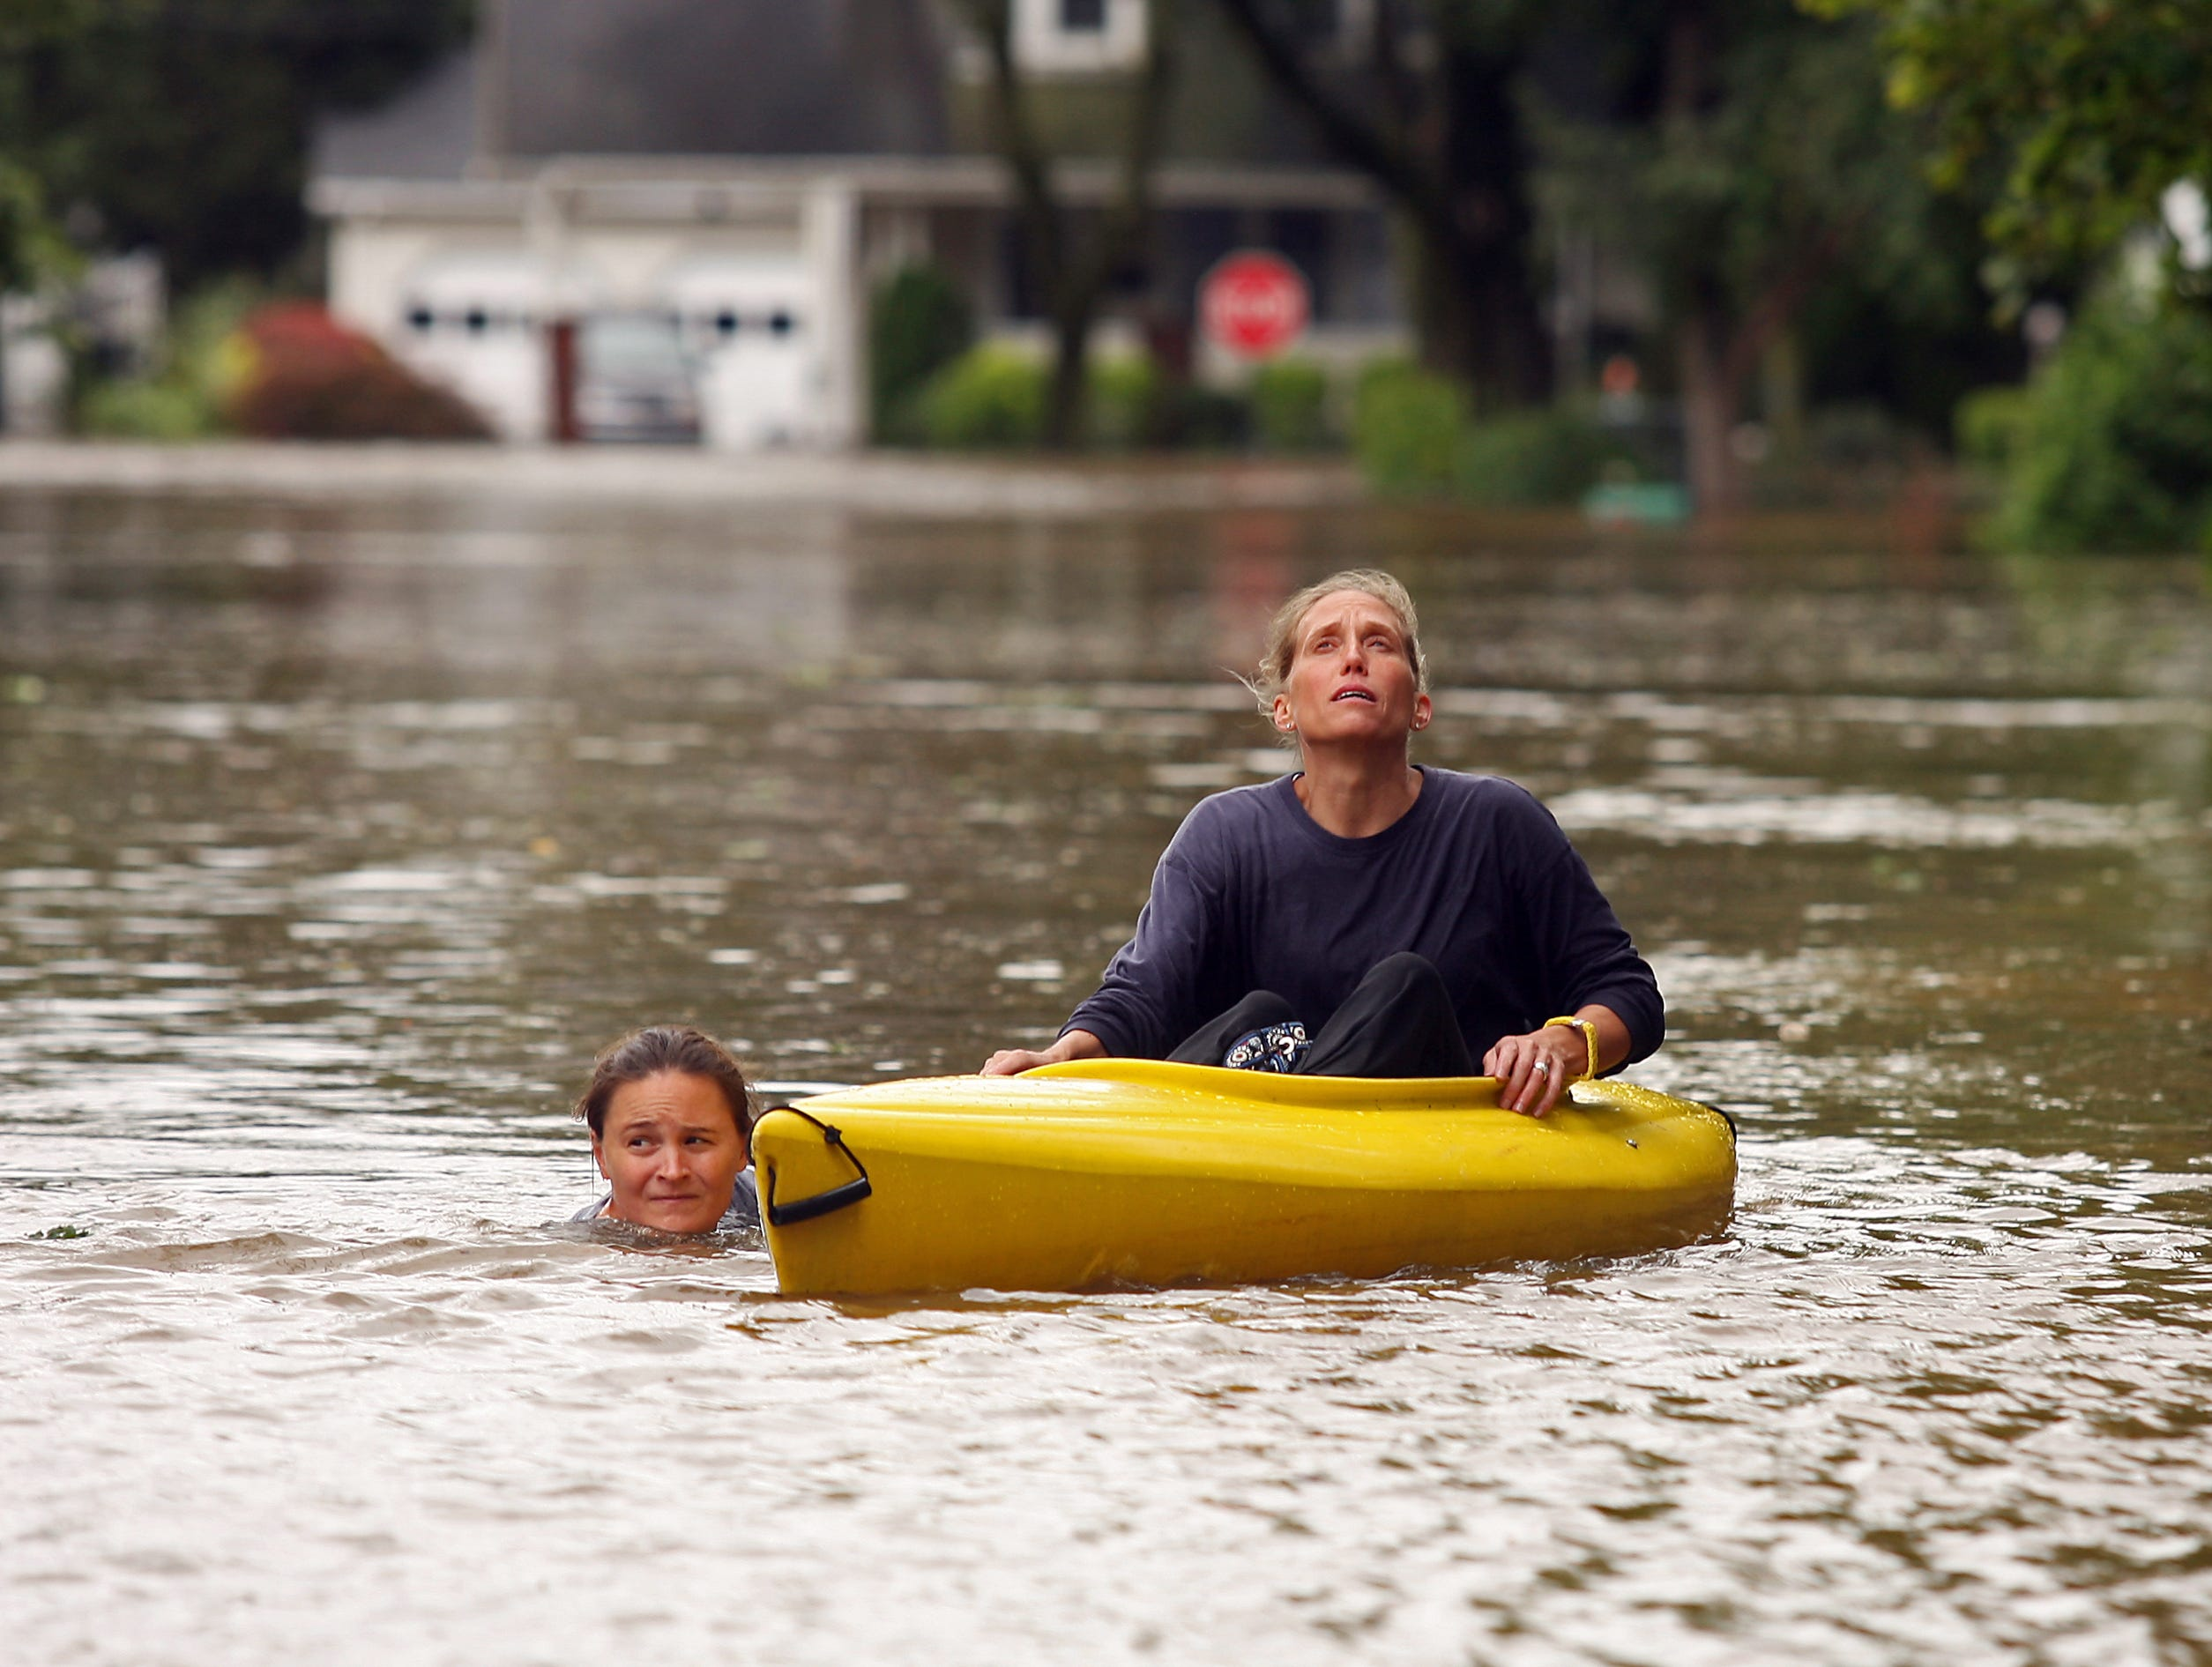 Jackie O'Connor, l, helps guide roommate Jennifer Schweizer down Hewetson Road in Denville, NJ. The two went to inspect their apartment to see the flooding damage as Hurricane Irene pounded Morris County with heavy wind and rain Sunday.